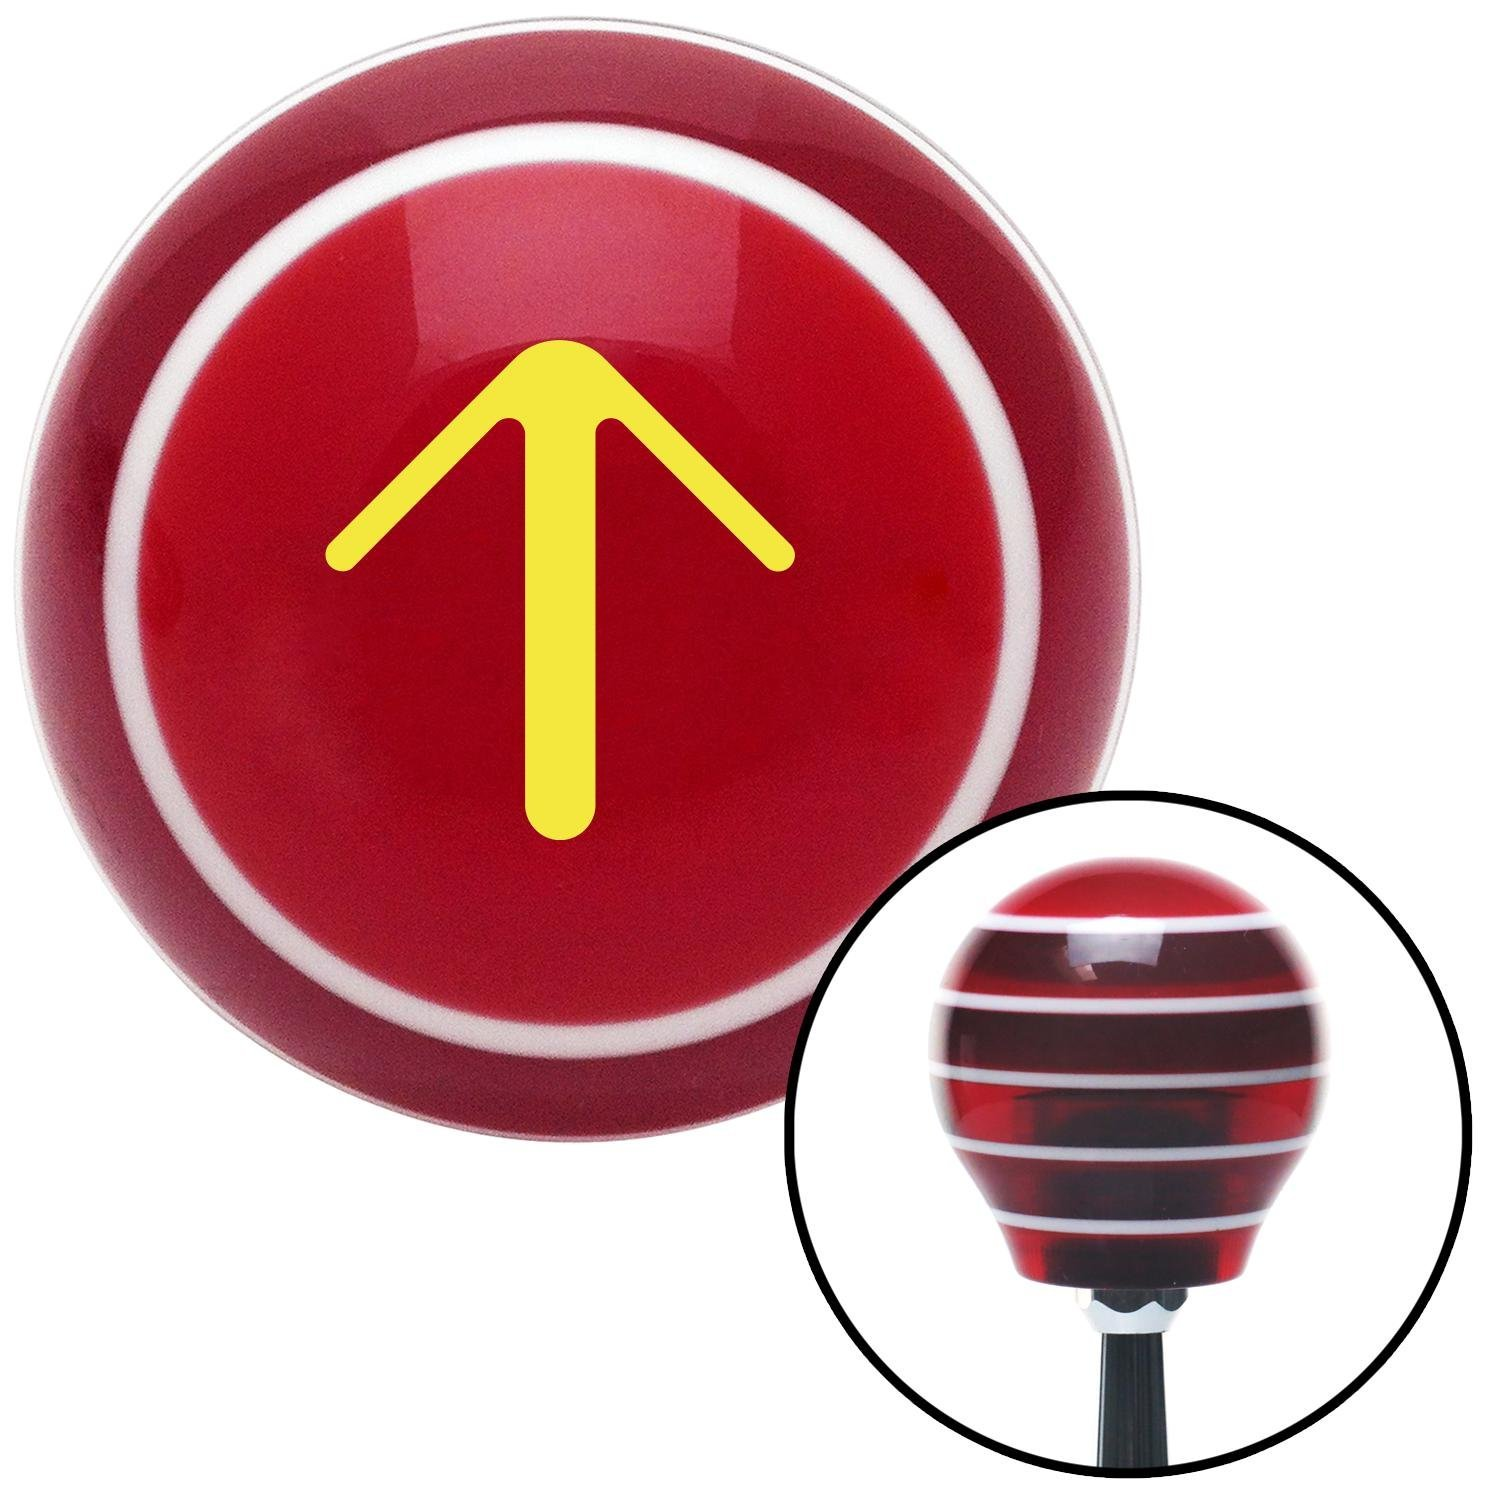 American Shifter 112039 Red Stripe Shift Knob with M16 x 1.5 Insert Yellow Solid Pointing Arrow Up